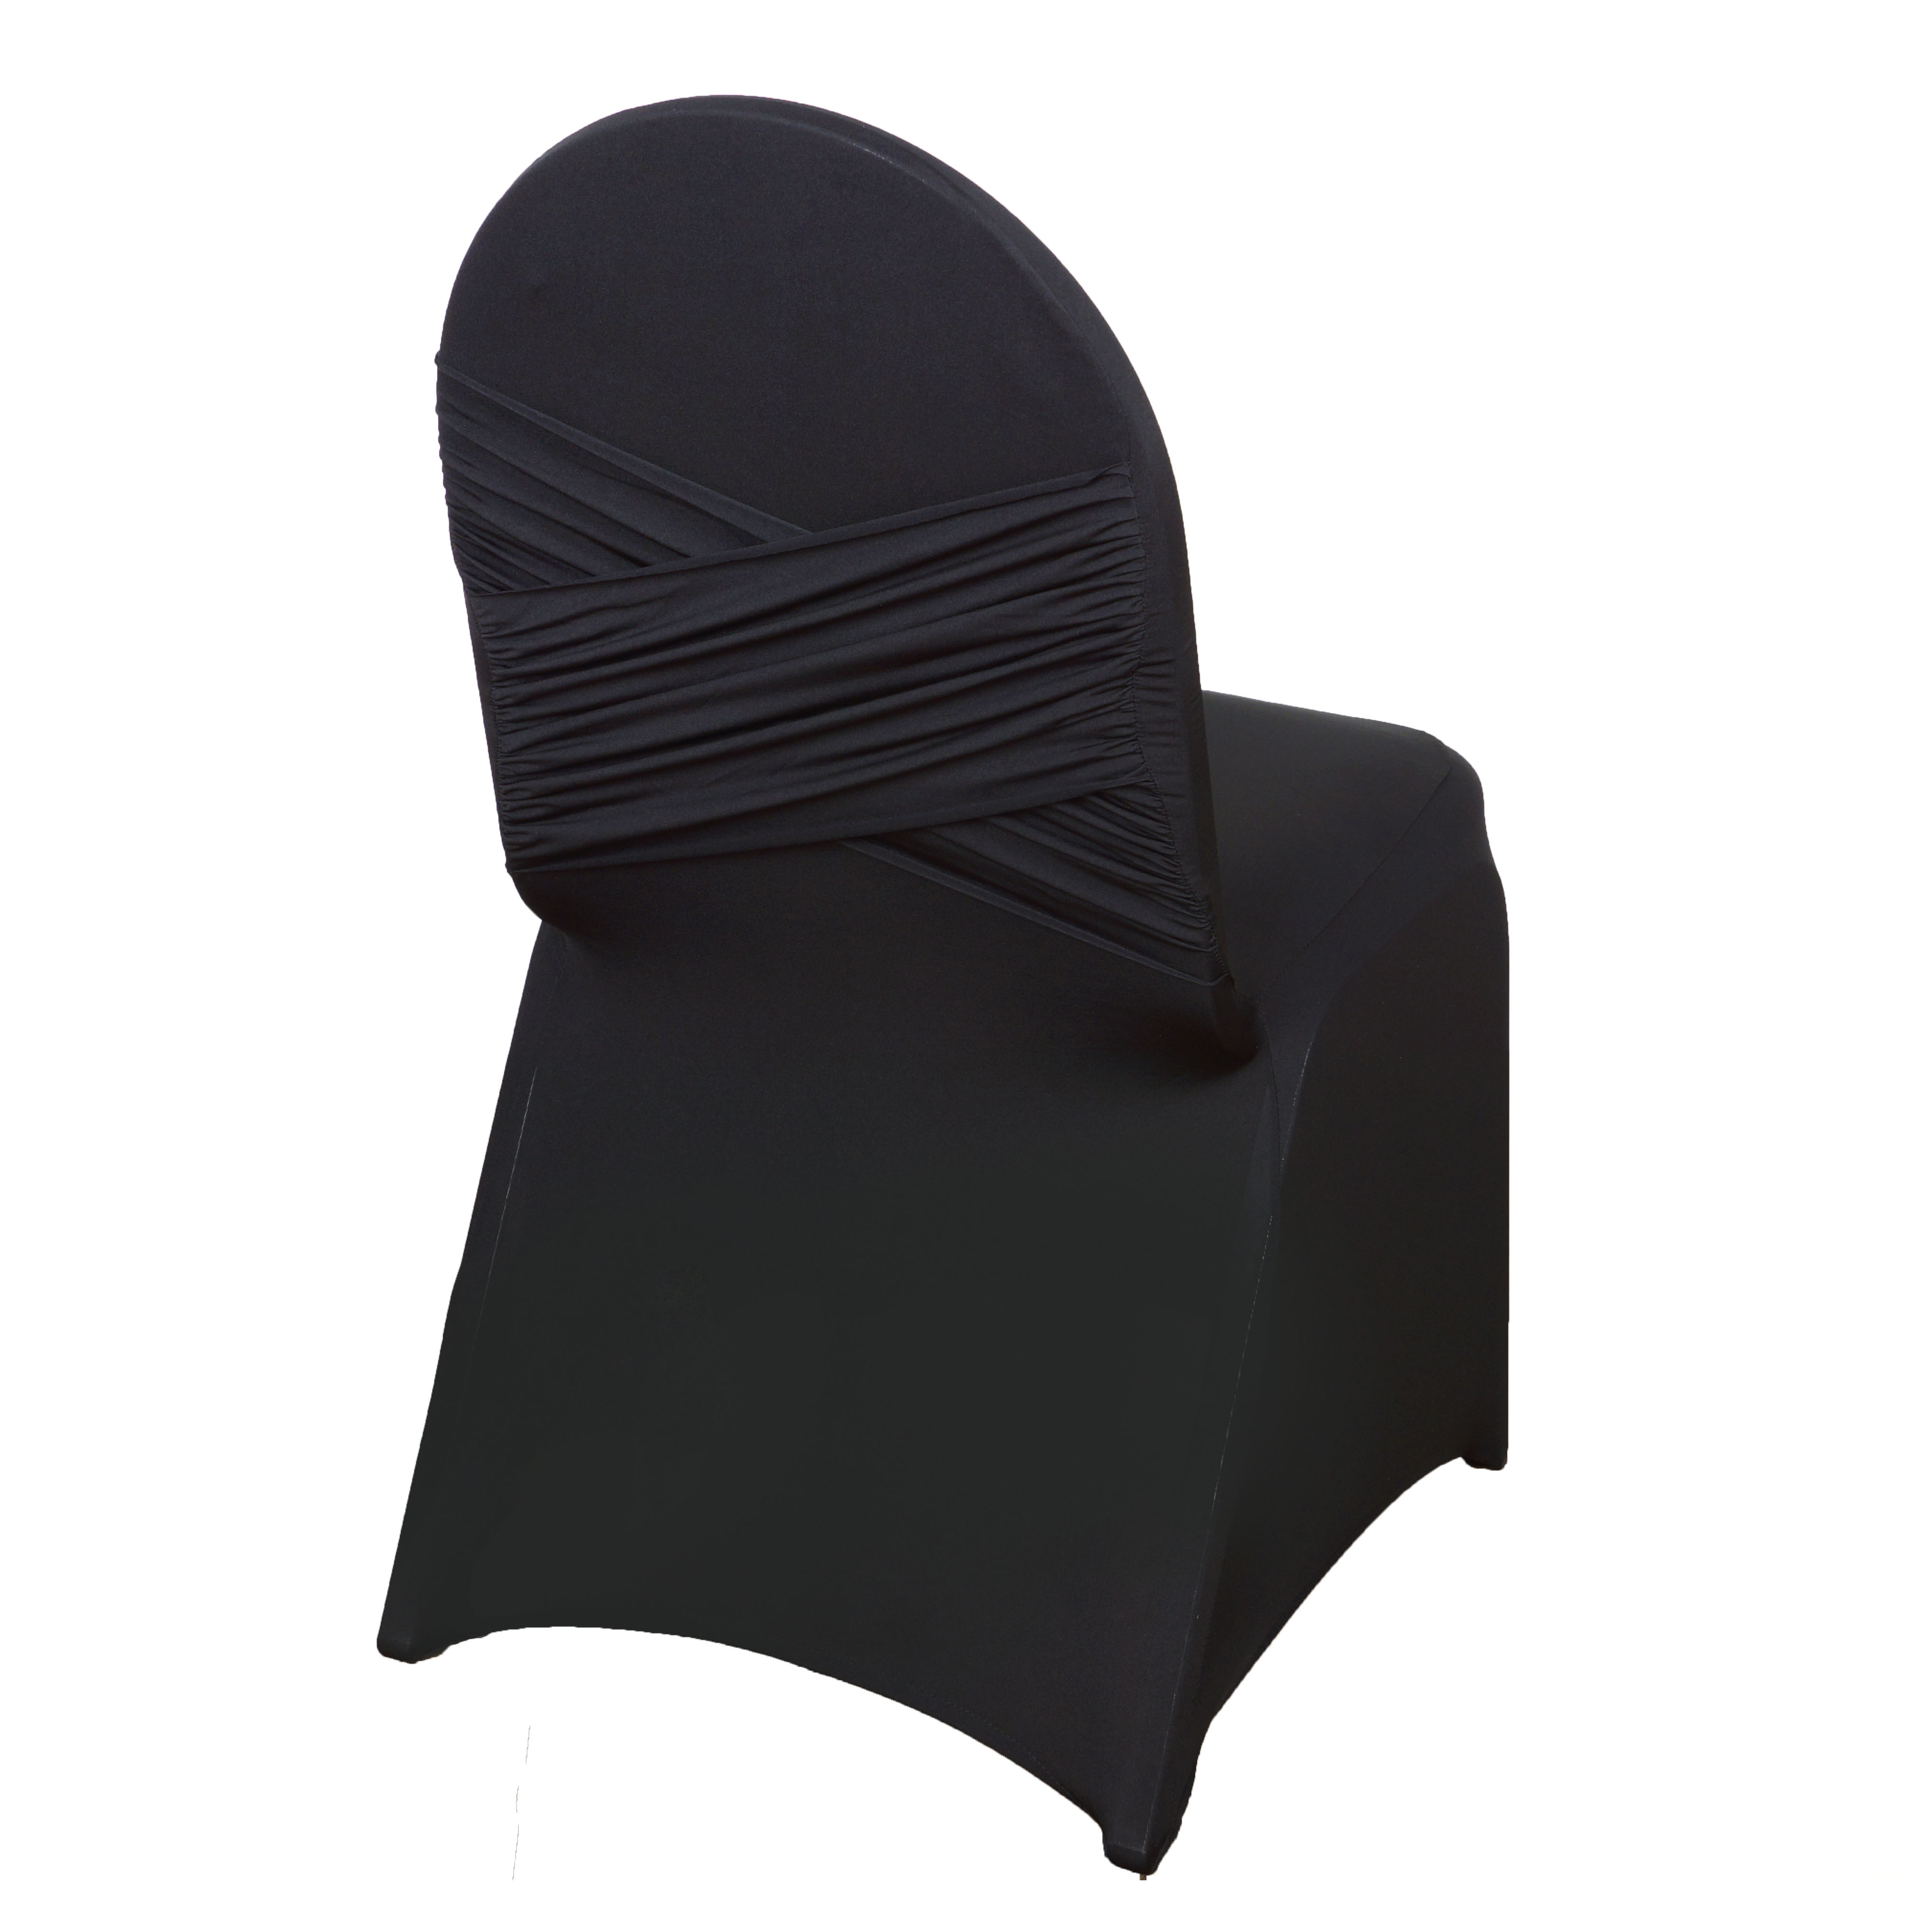 50 Pc Spandex Banquet Chair Cover Stretchable Crisscross